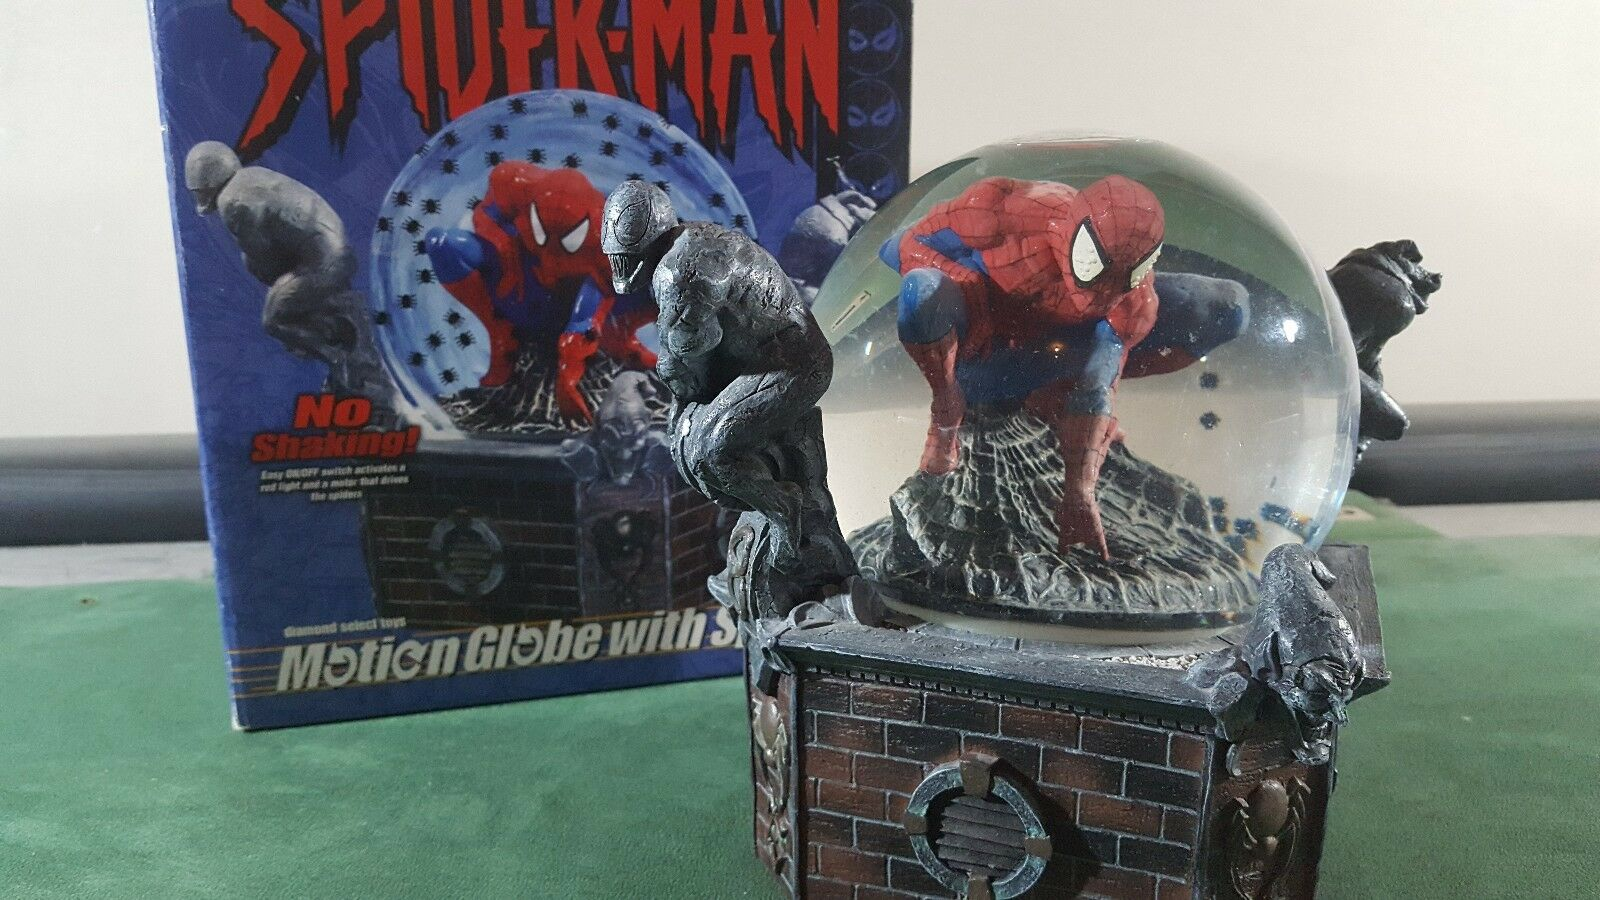 Spider-man Motion Snow Globe with Spiders Figure Statue Diamond Select